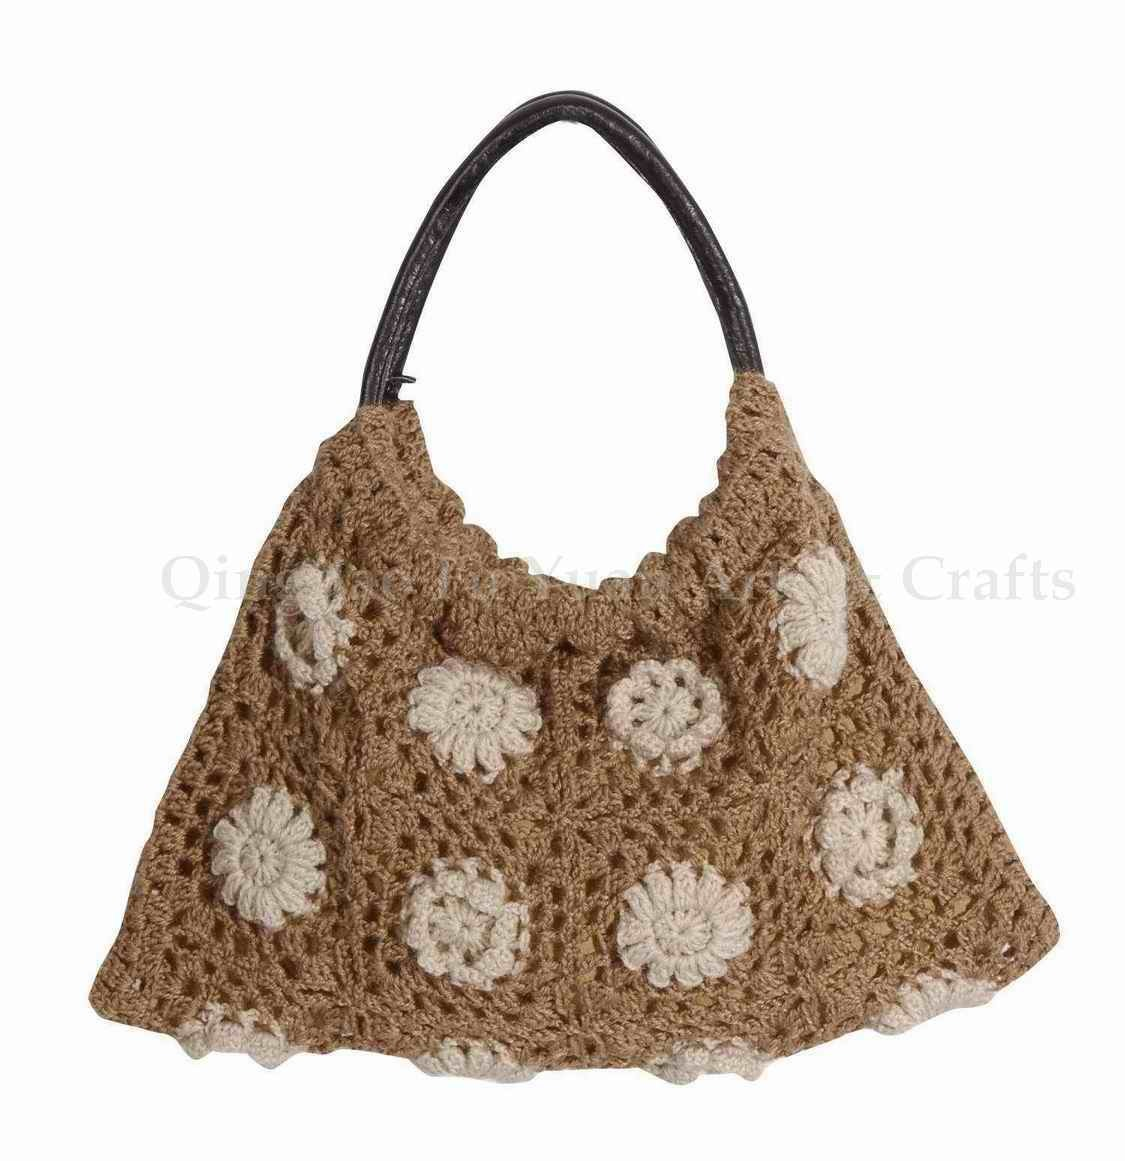 Crochet Handbags : China Crochet Bag (FY8020) - China Knitting Bag, Knitted Bag